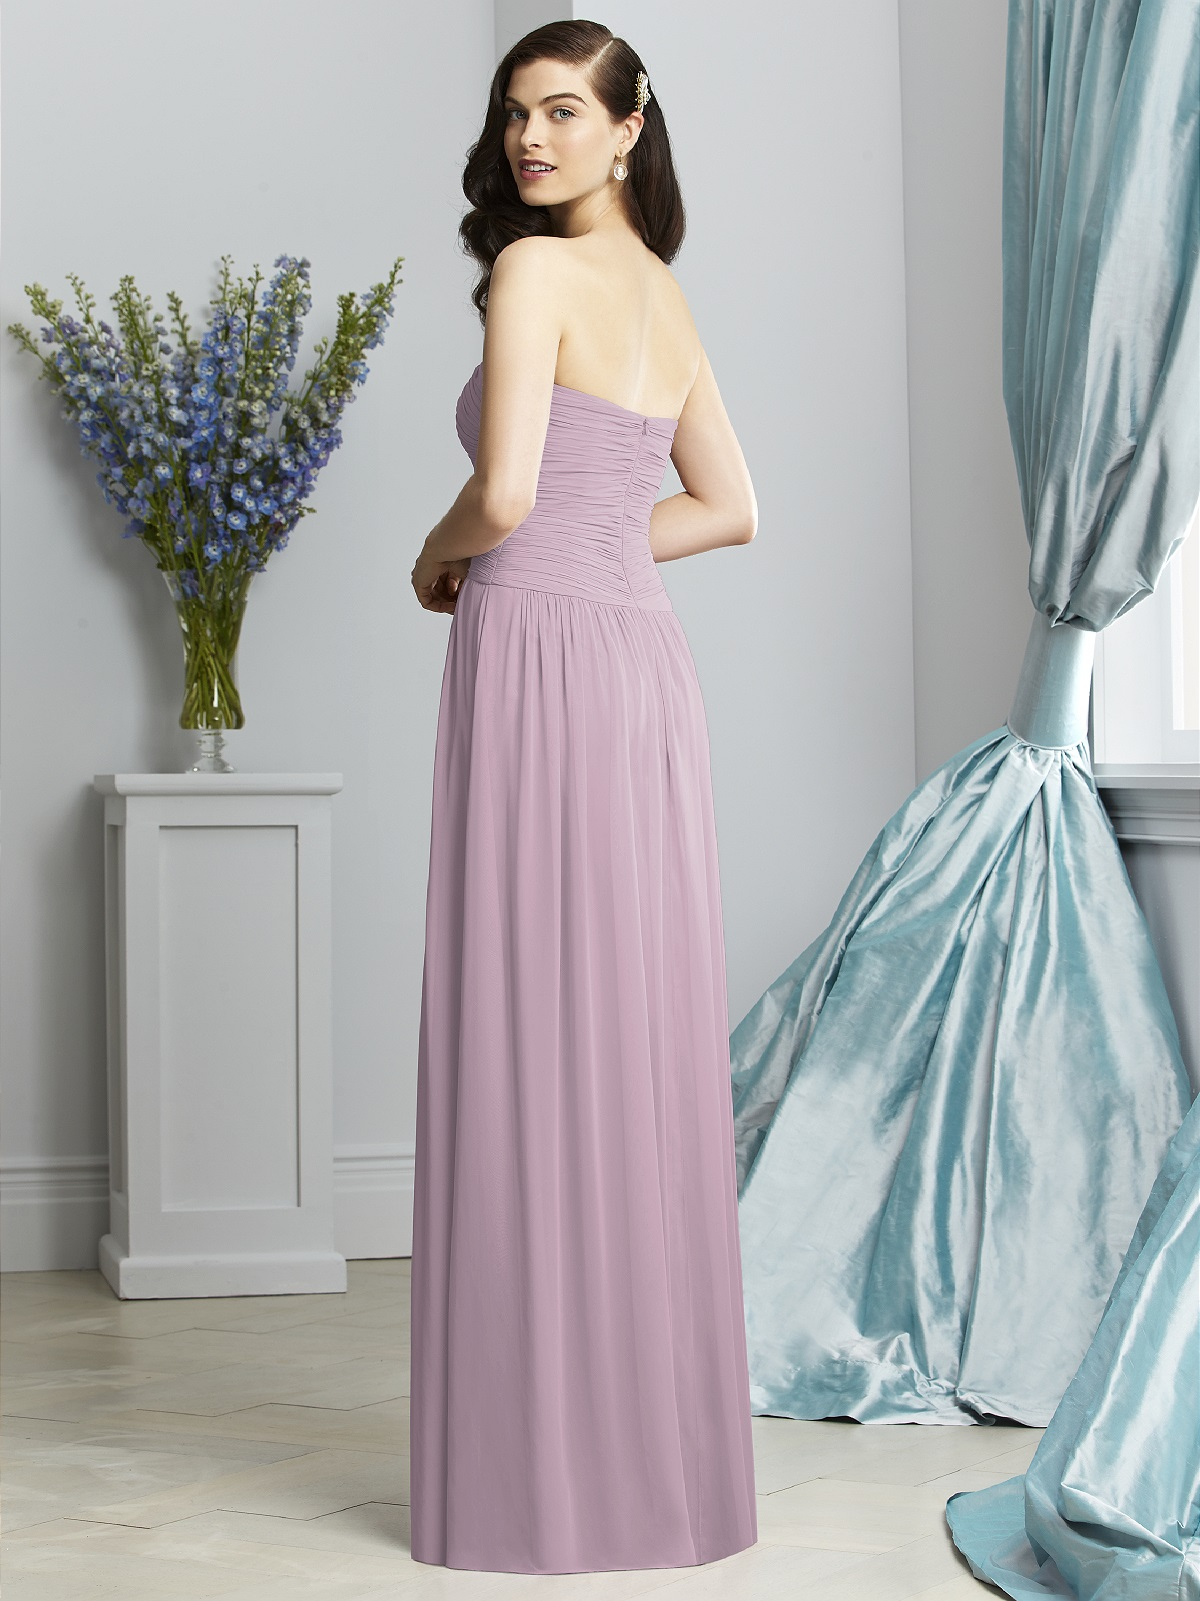 Dessy bridesmaid dressesdessy dresses 2931dessy collectionthe dessy bridesmaid dresses dessy 2931 ombrellifo Choice Image